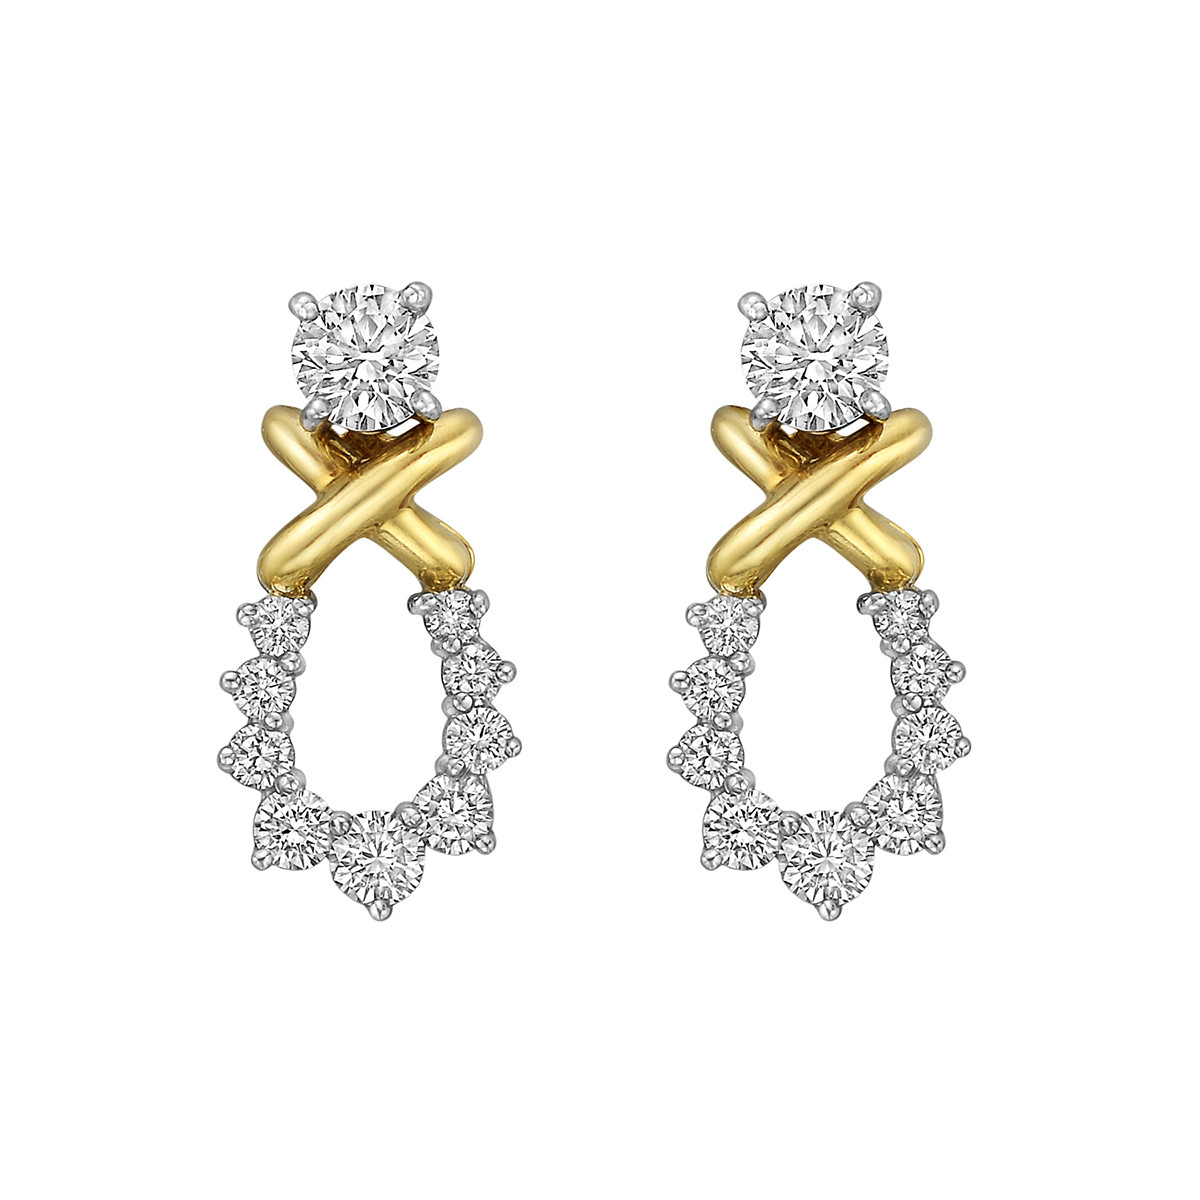 Round Diamond Stud Earrings with Removable Drops